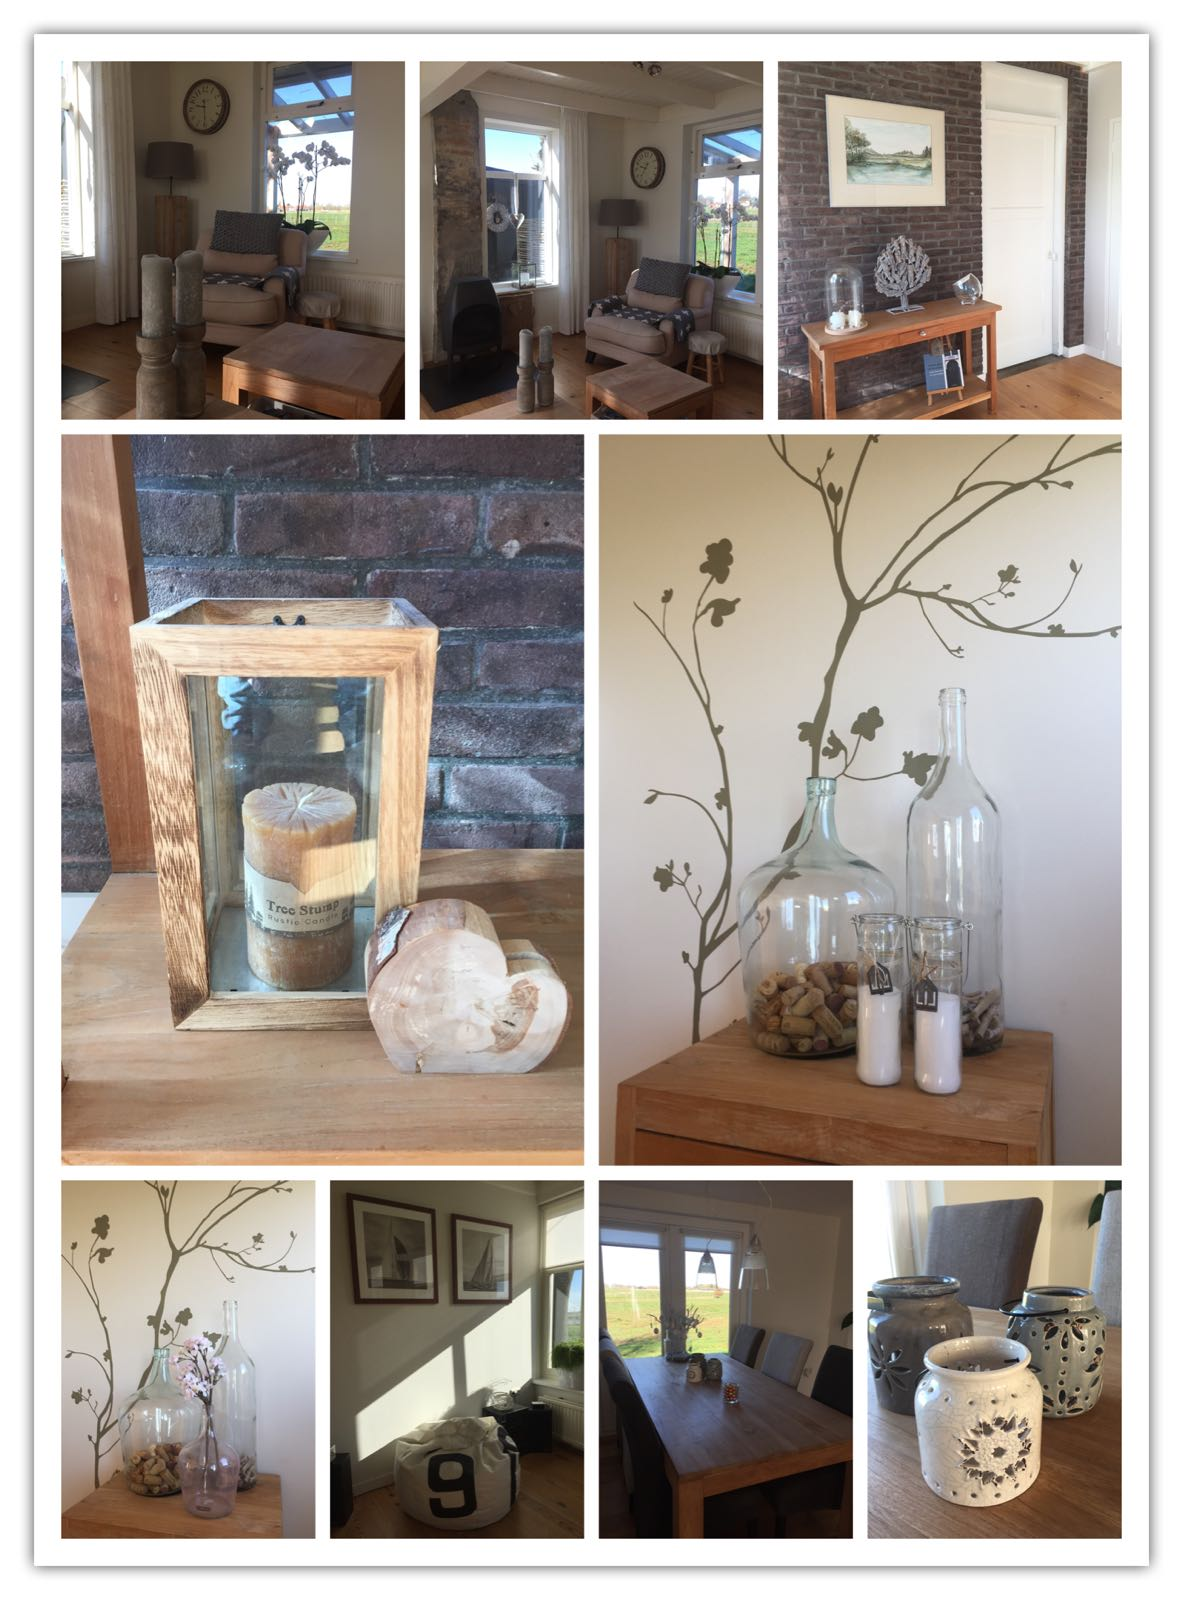 Interieur advies & styling